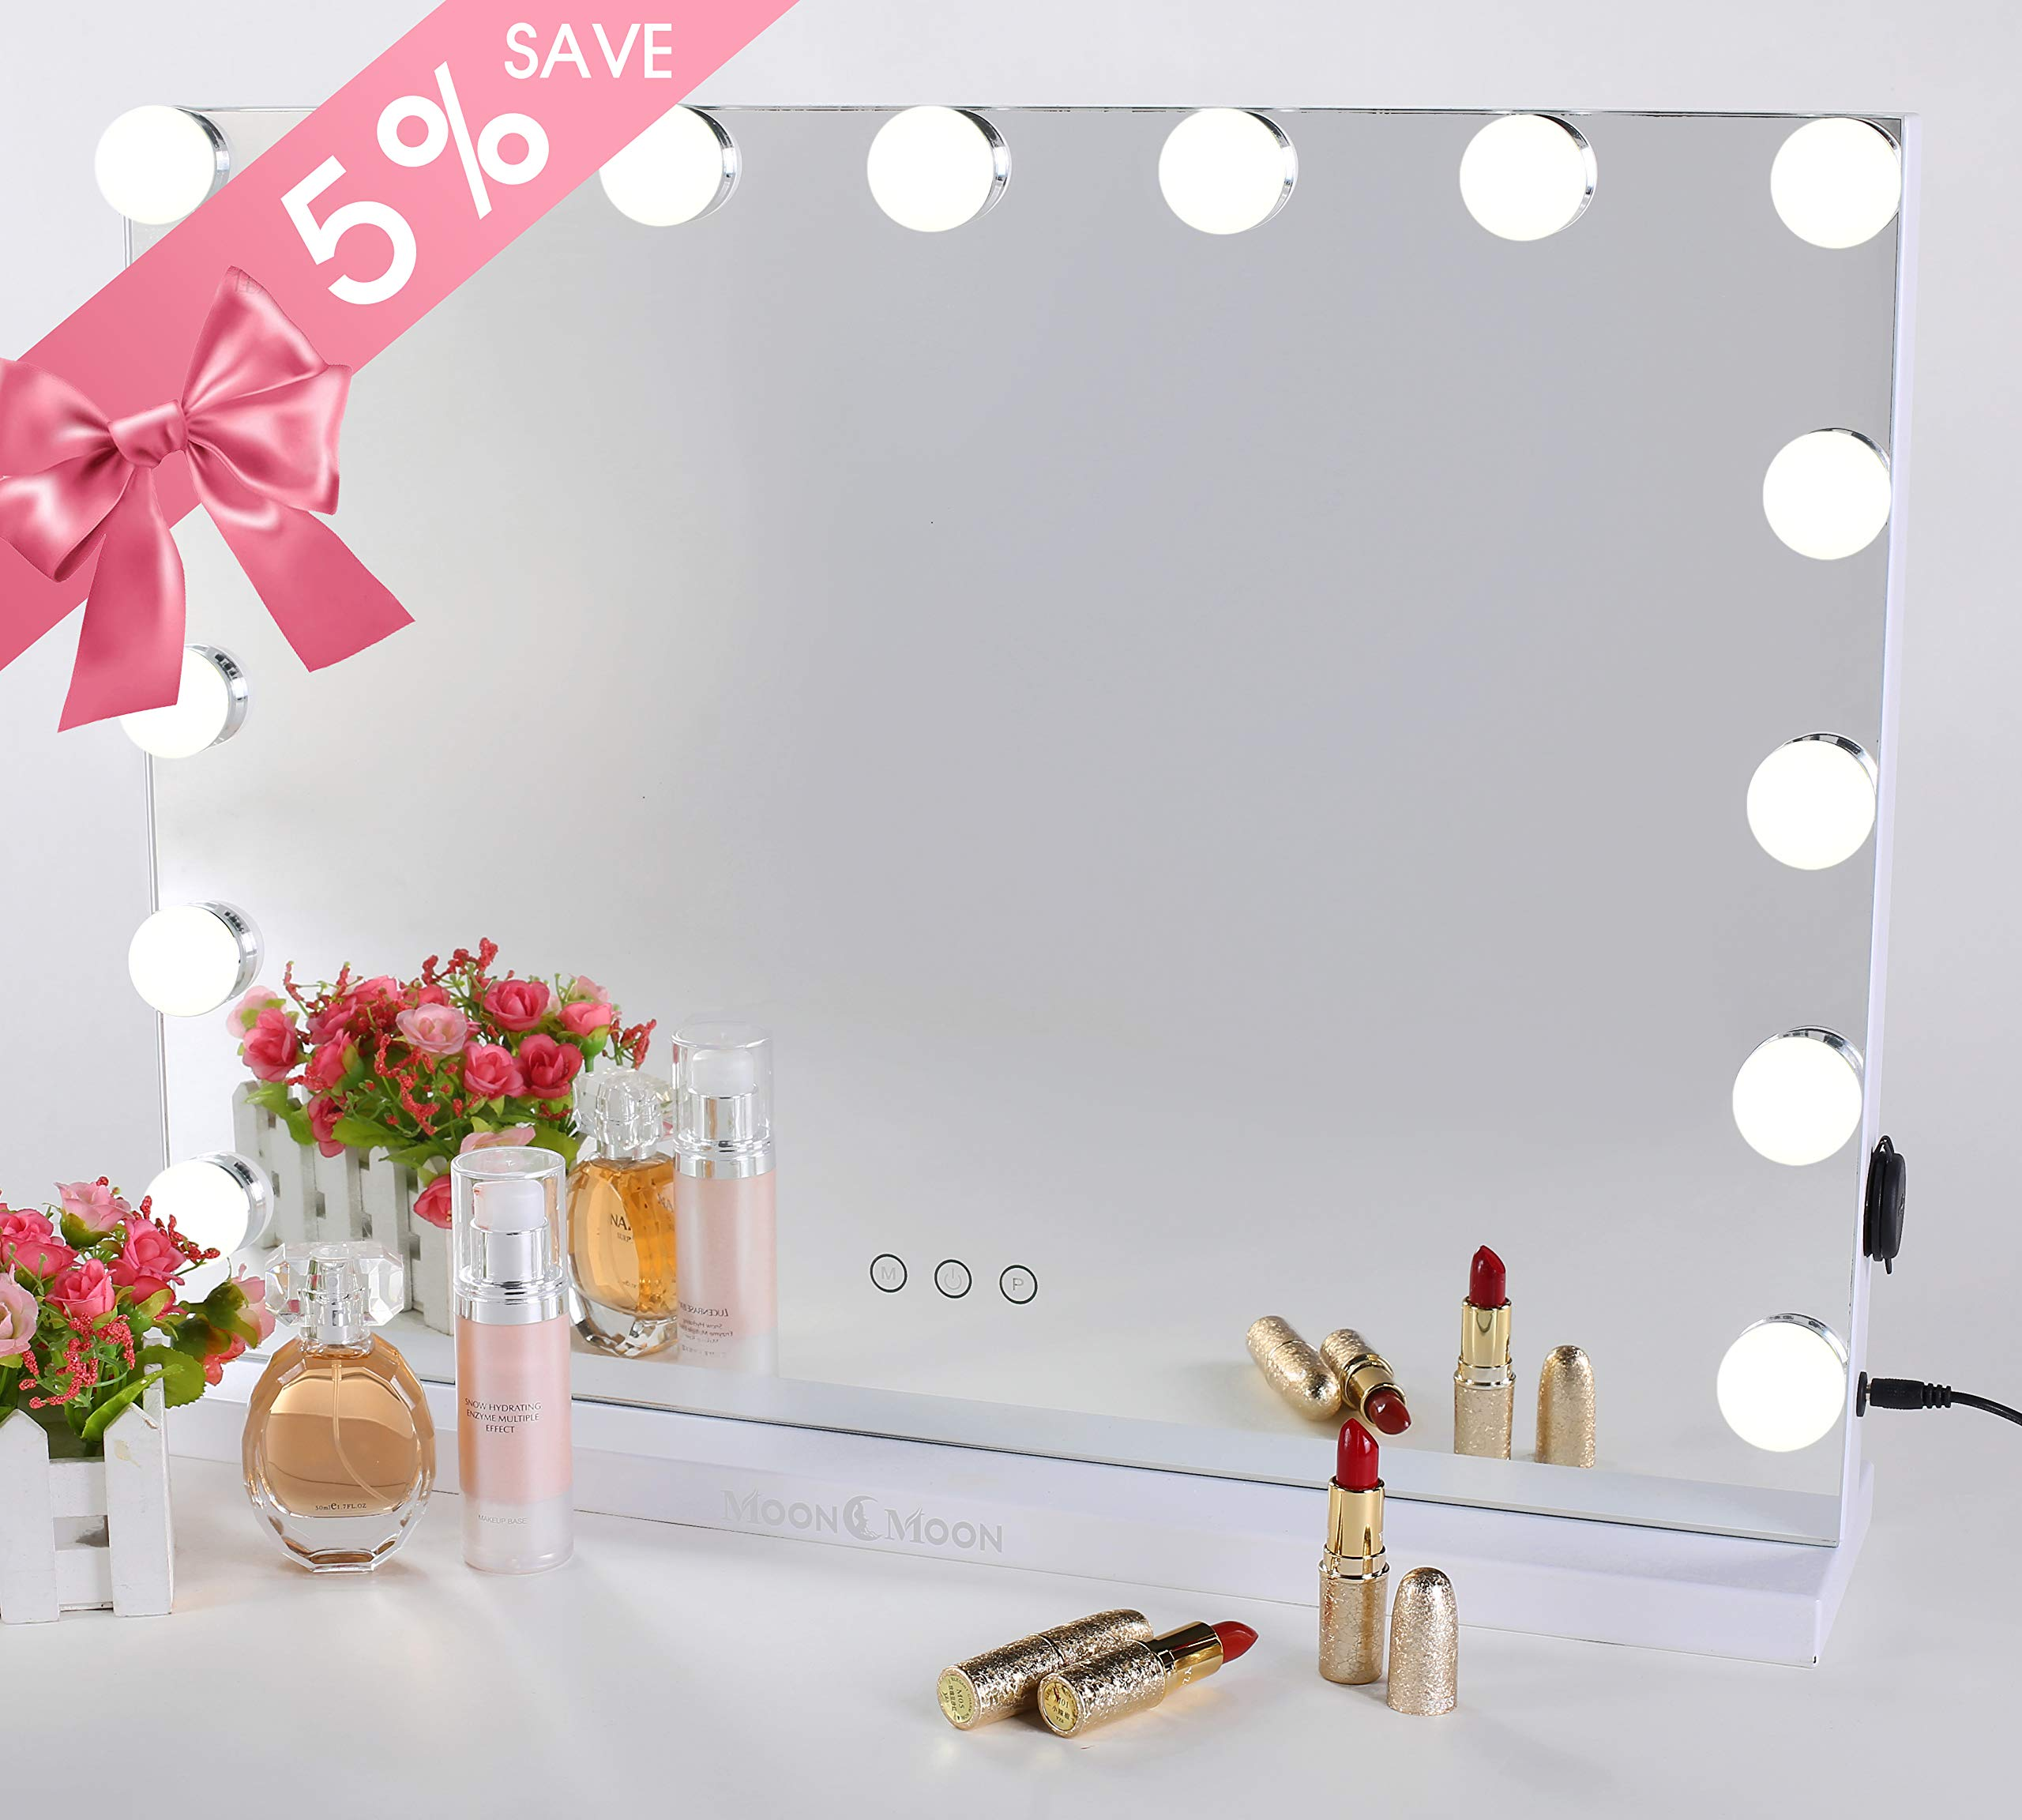 MoonMoon Hollywood Vanity Mirror with Lights,Professional Makeup Mirror & Lighted Vanity Makeup mirror with Smart Touch Adjustable LED Lights (white) by Moon Moon